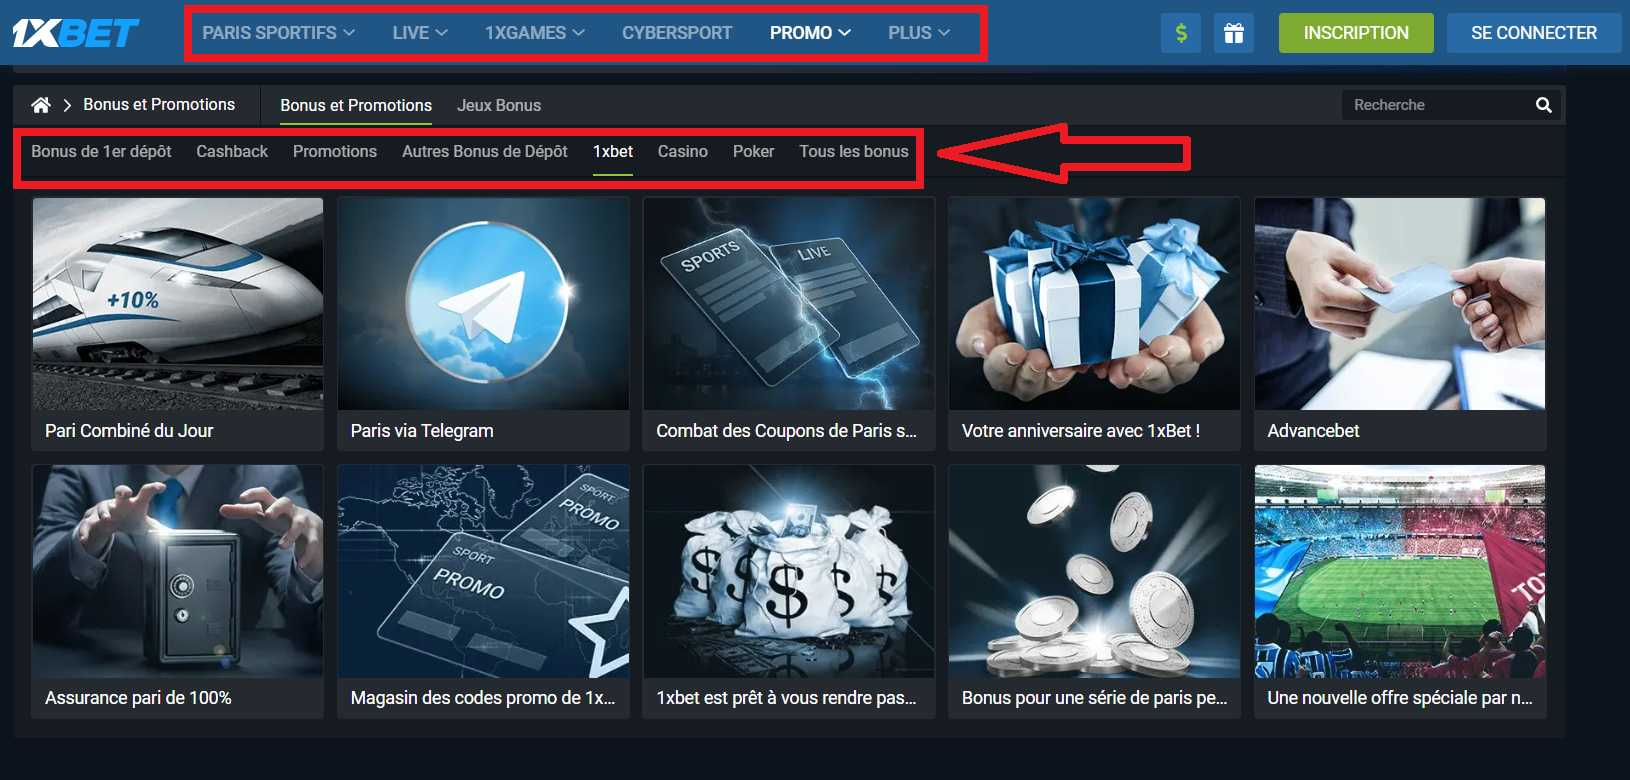 How to get a welcome bonus from 1XBET?